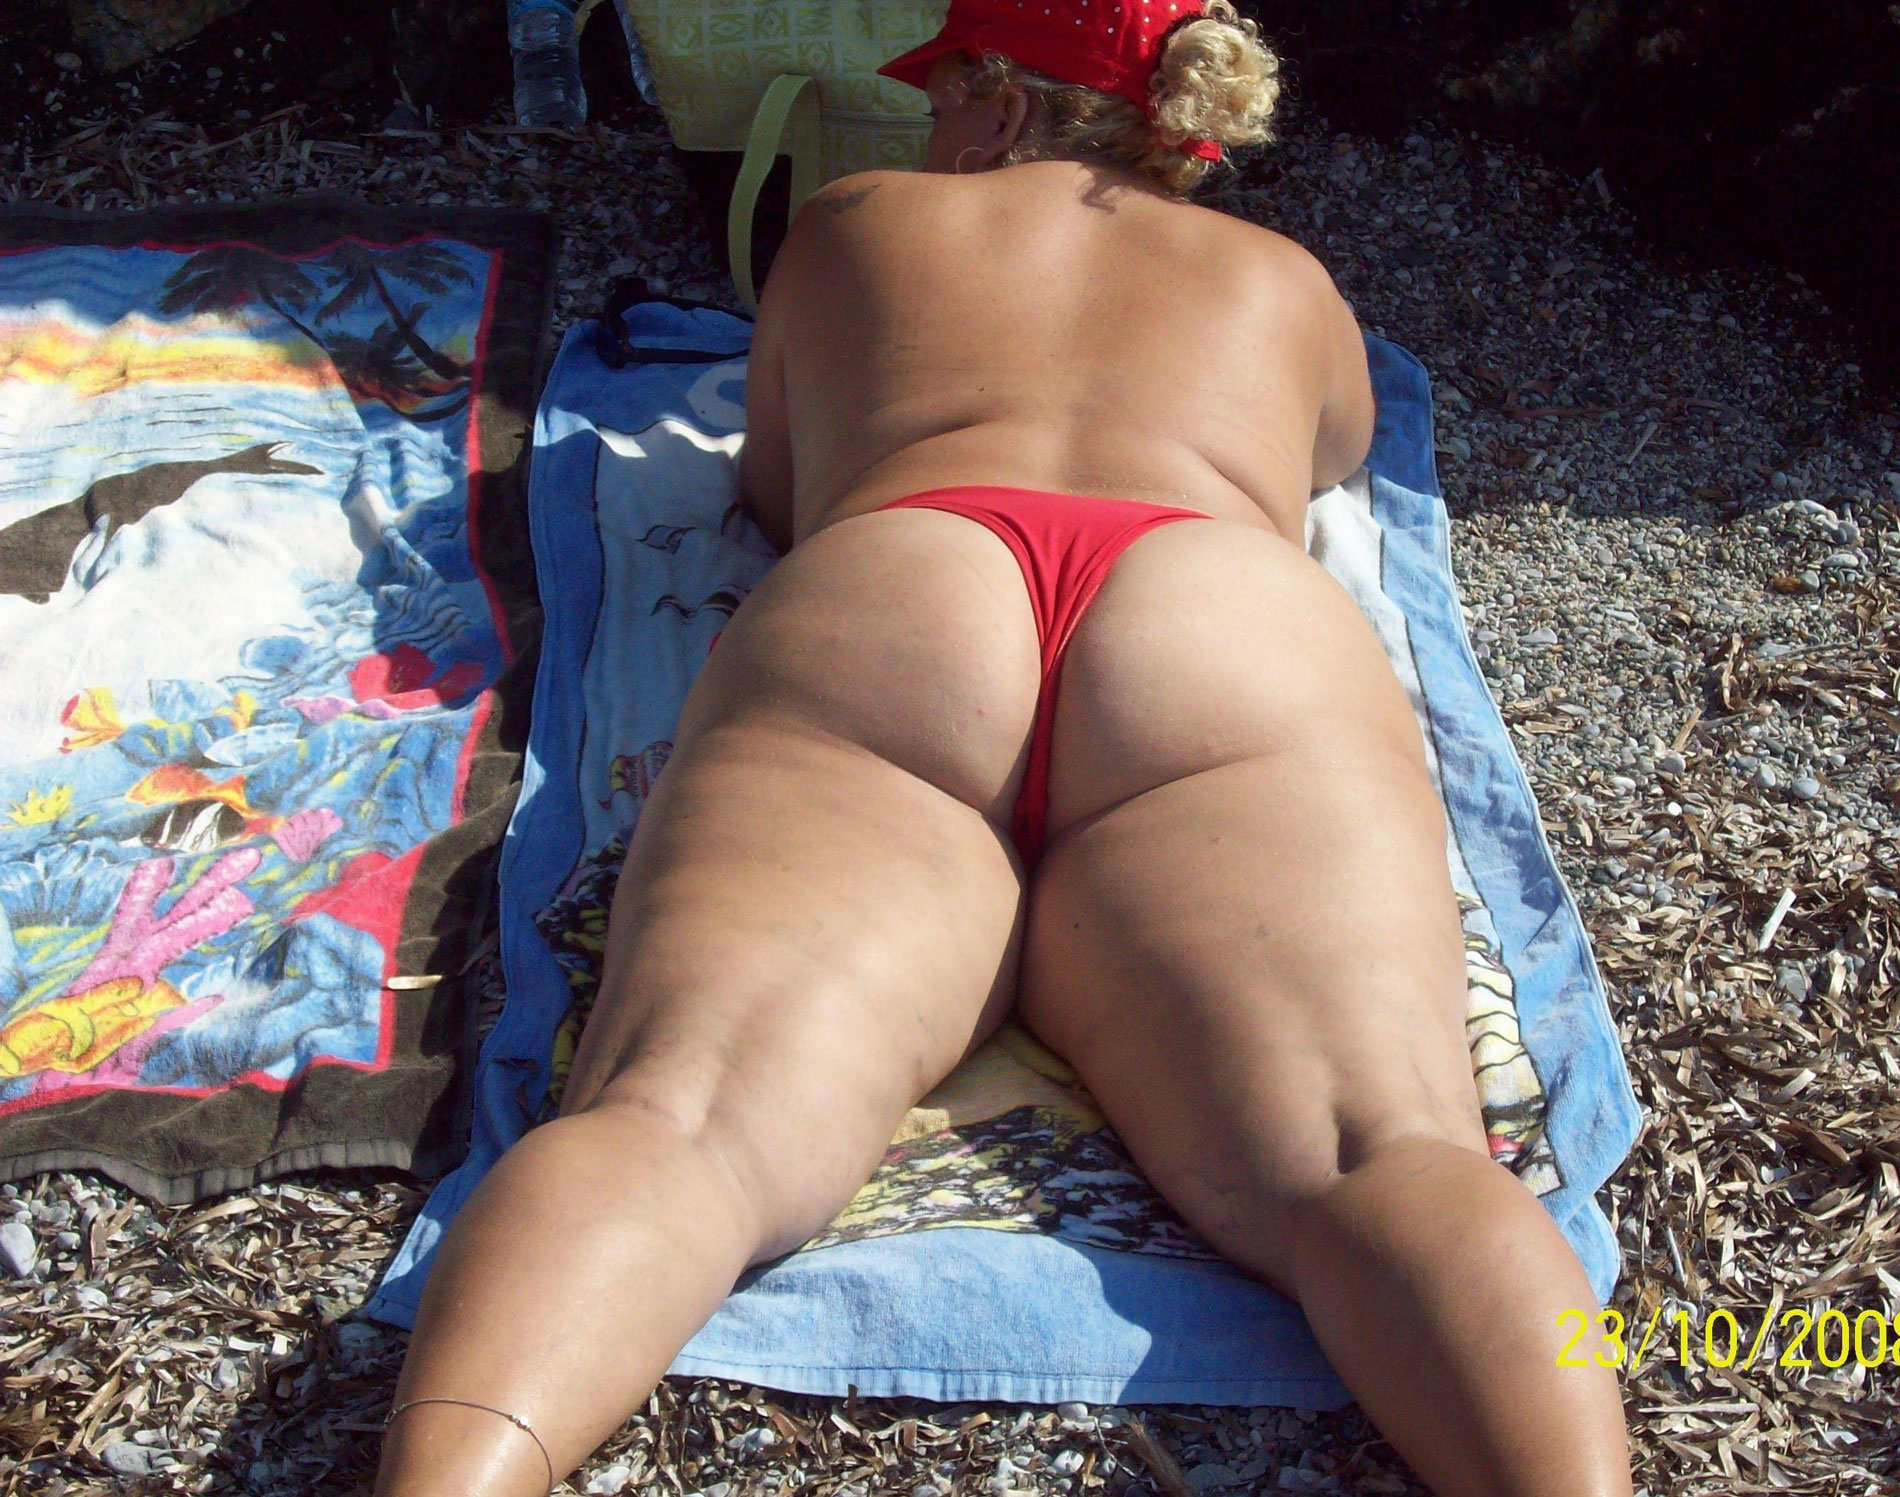 bbw-sunbathing-naked-naked-thin-asian-woman